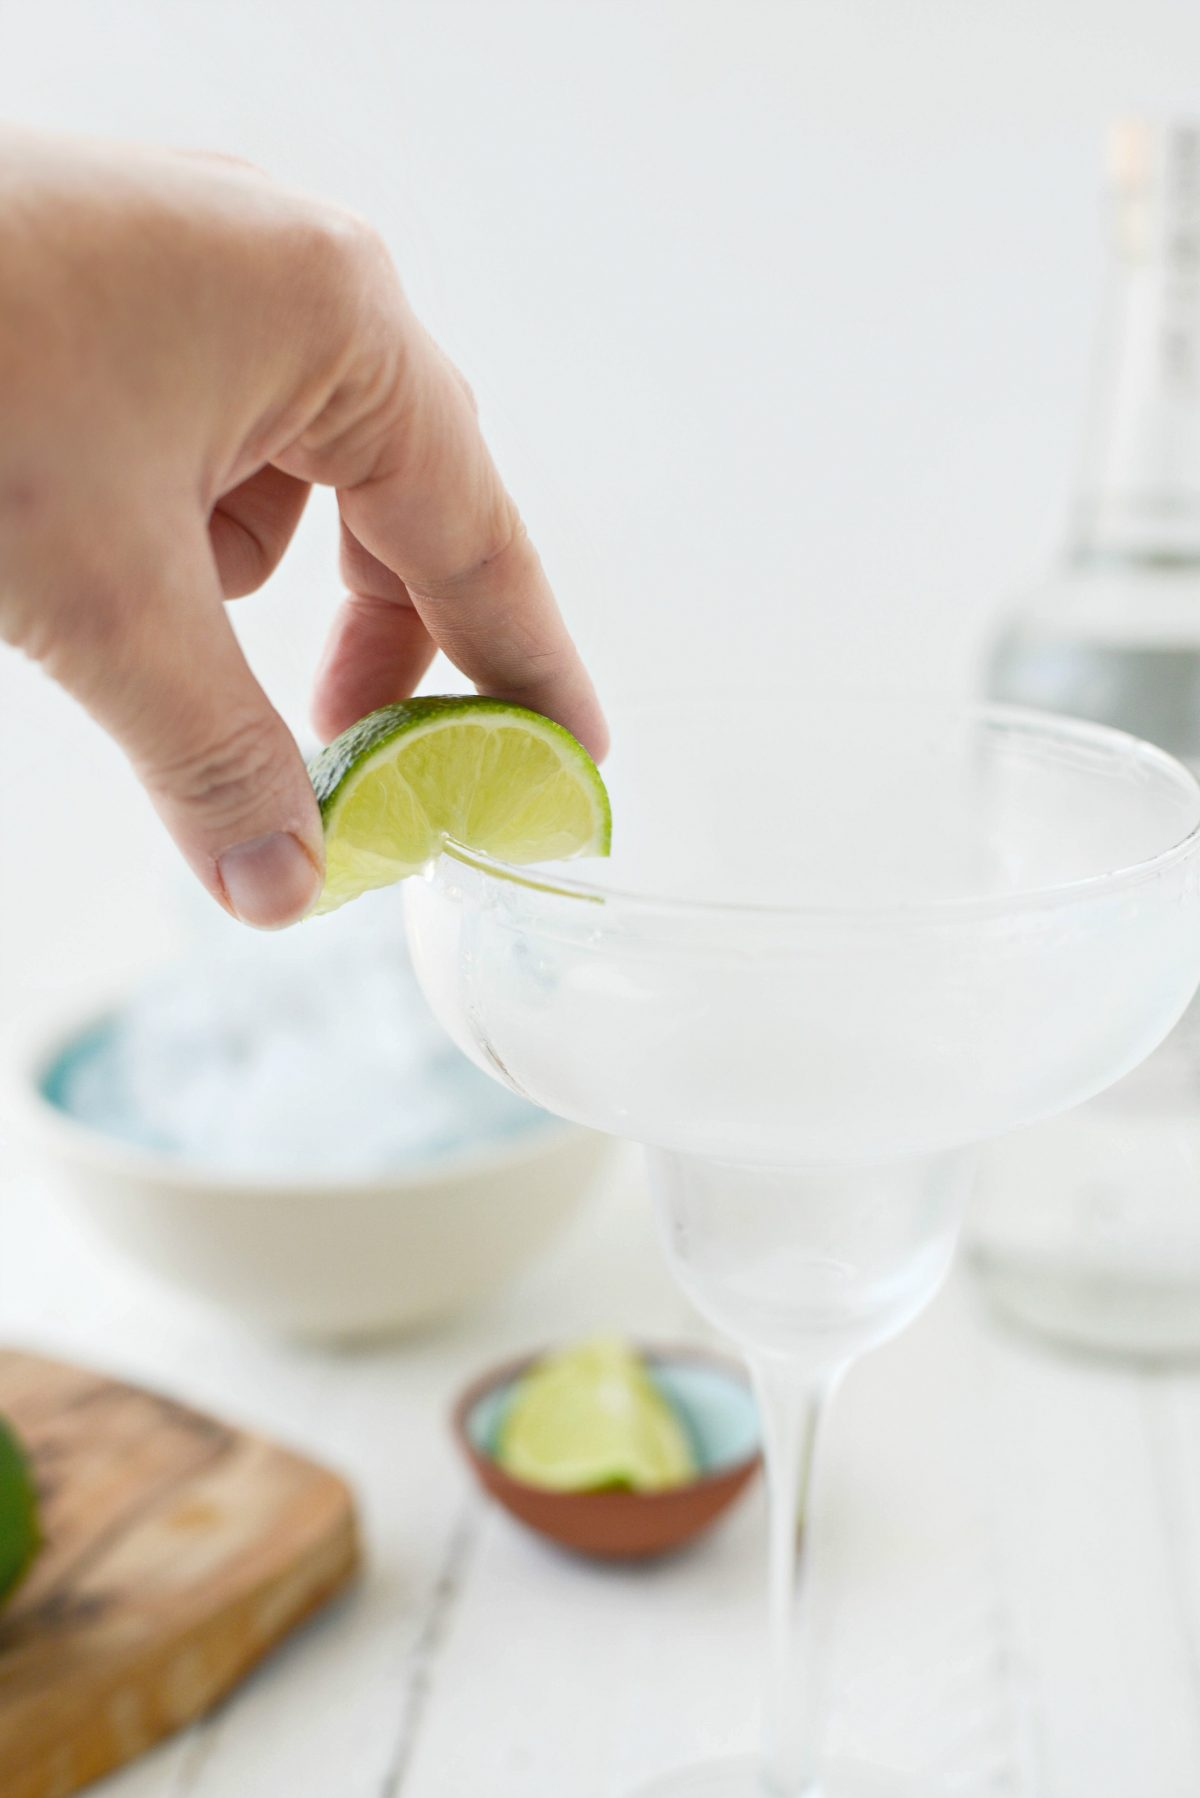 wet rim of glass with wedge of lime.